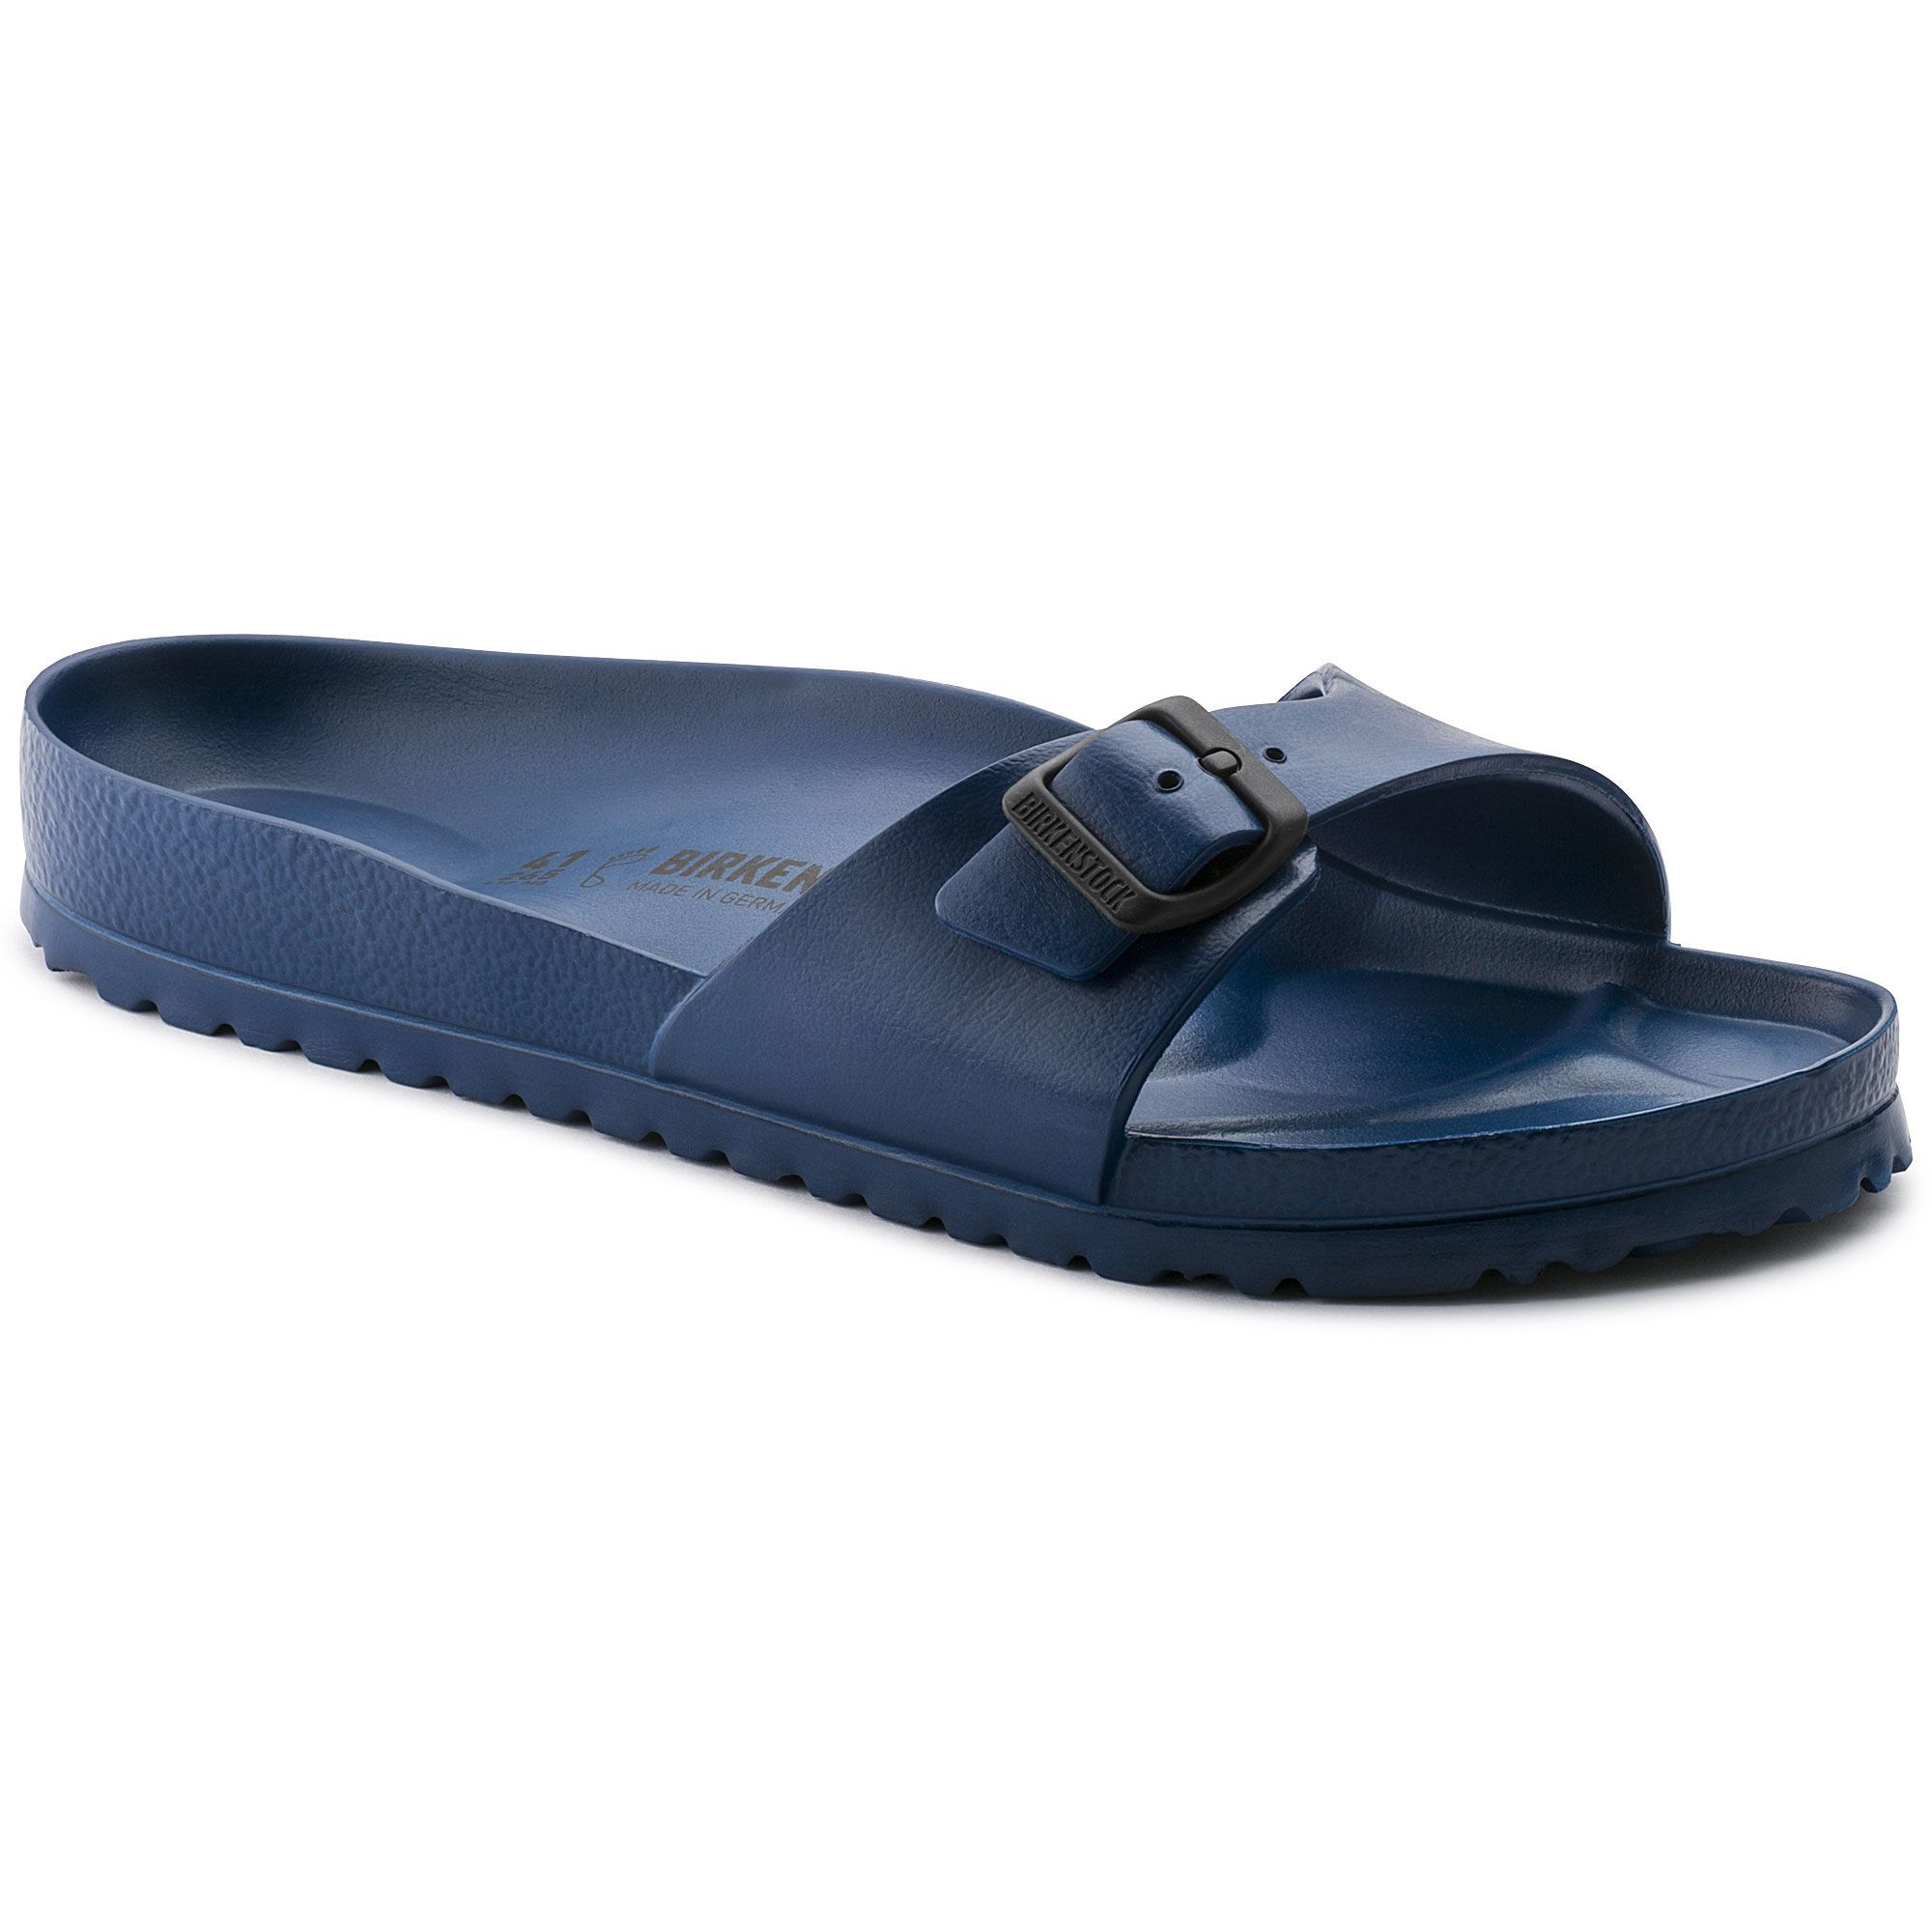 8c27ac58477 BIRKENSTOCK Madrid Essentials Navy EVA in all sizes ✓ Buy directly from the  manufacturer online ✓ All fashion trends from Birkenstock